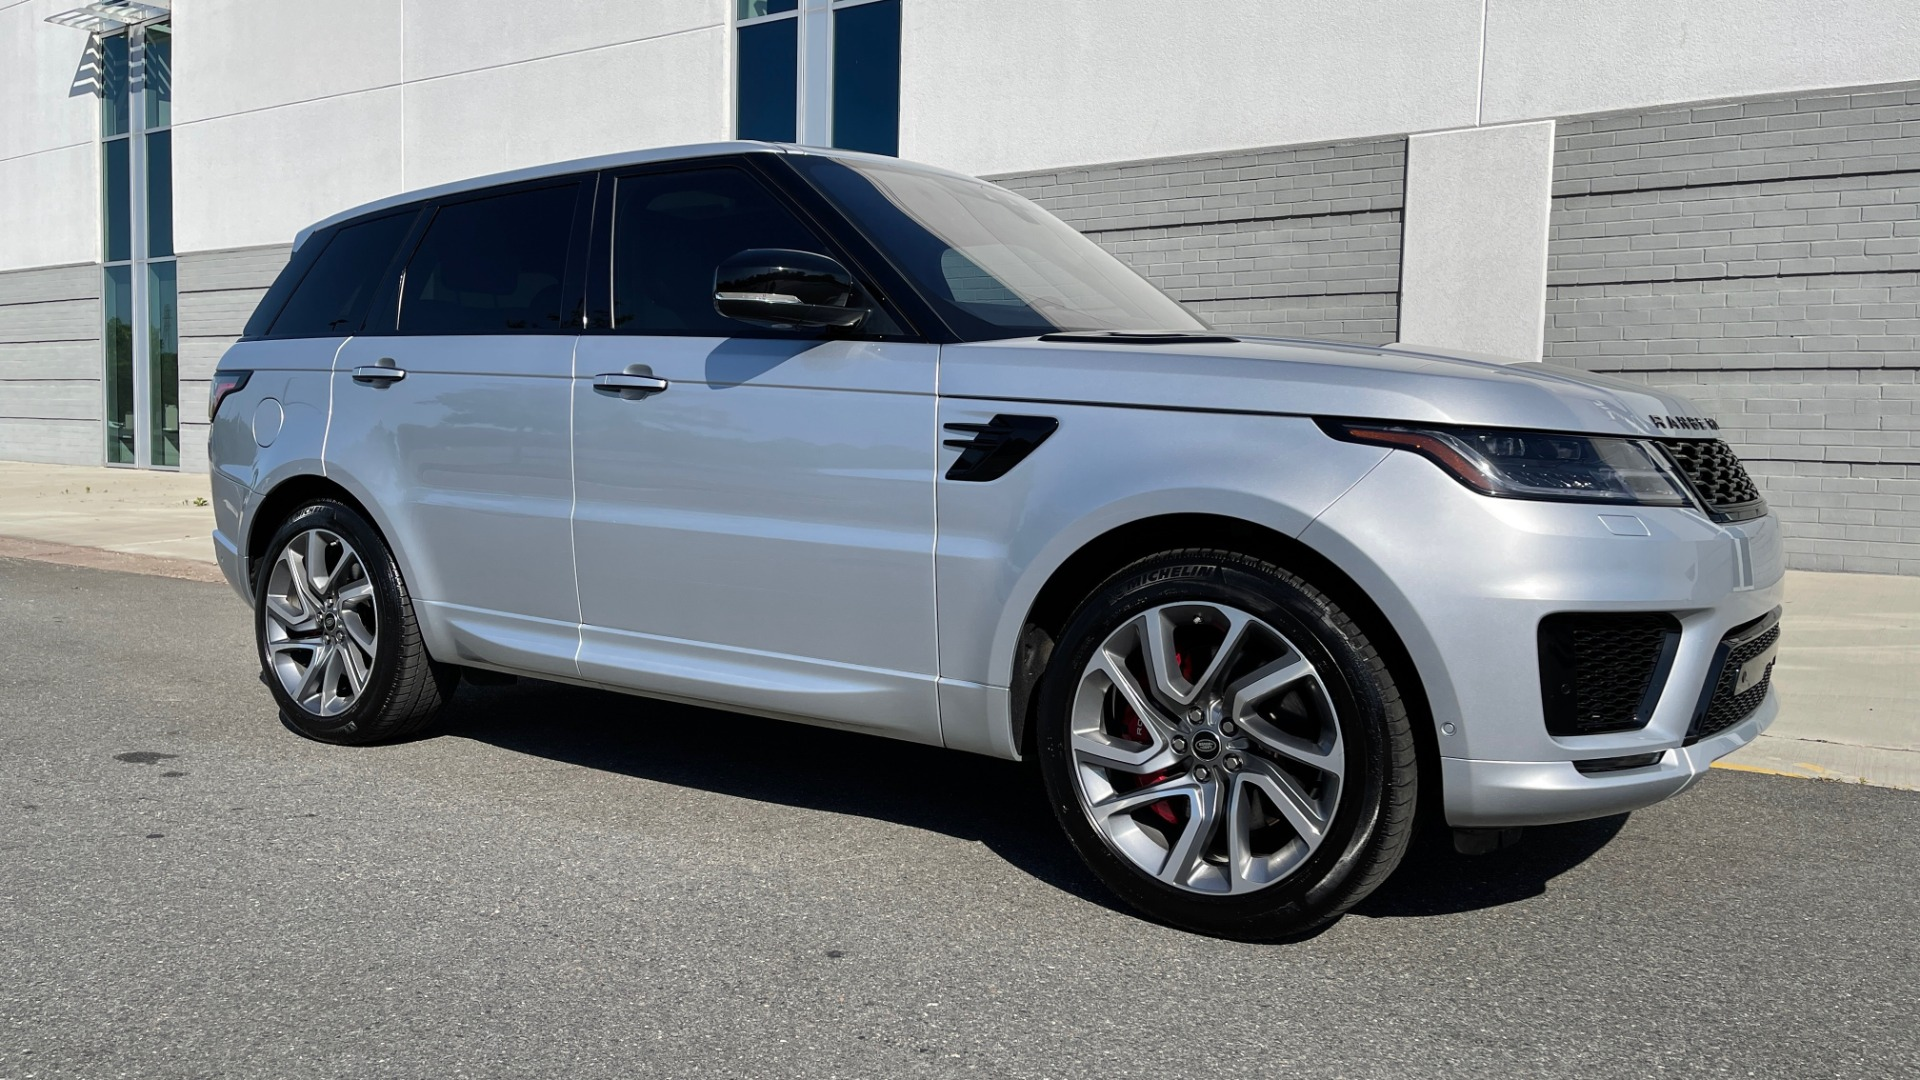 Used 2019 Land Rover RANGE ROVER SPORT HSE DYNAMIC / NAV / PANO-ROOF / BLIND SPOT / LANE DEPART / REARVIEW for sale Sold at Formula Imports in Charlotte NC 28227 3